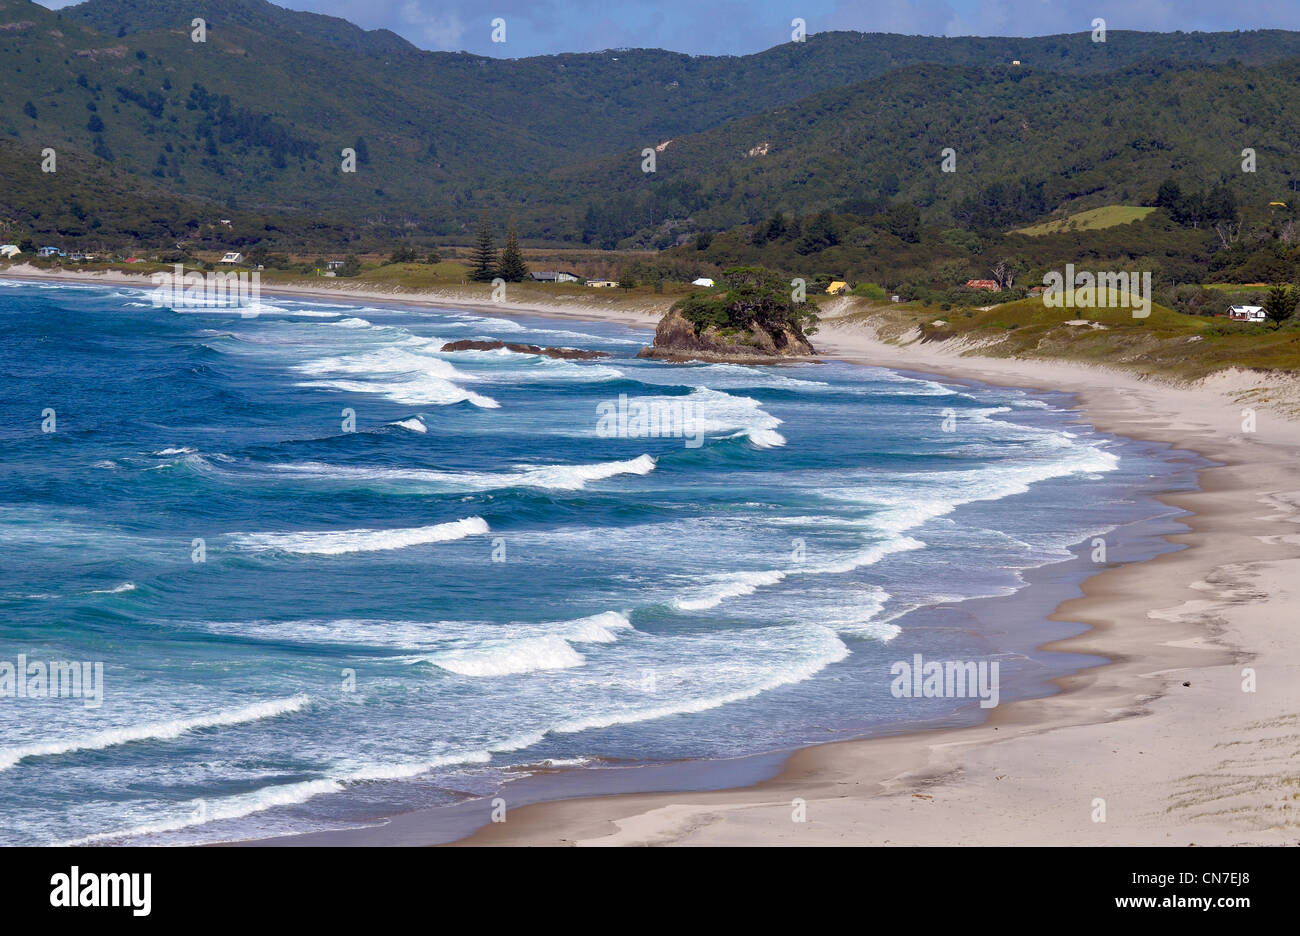 Waves, surf and sand dunes, Medlands Beach, Great Barrier Island, Hauraki Gulf, New Zealand - Stock Image